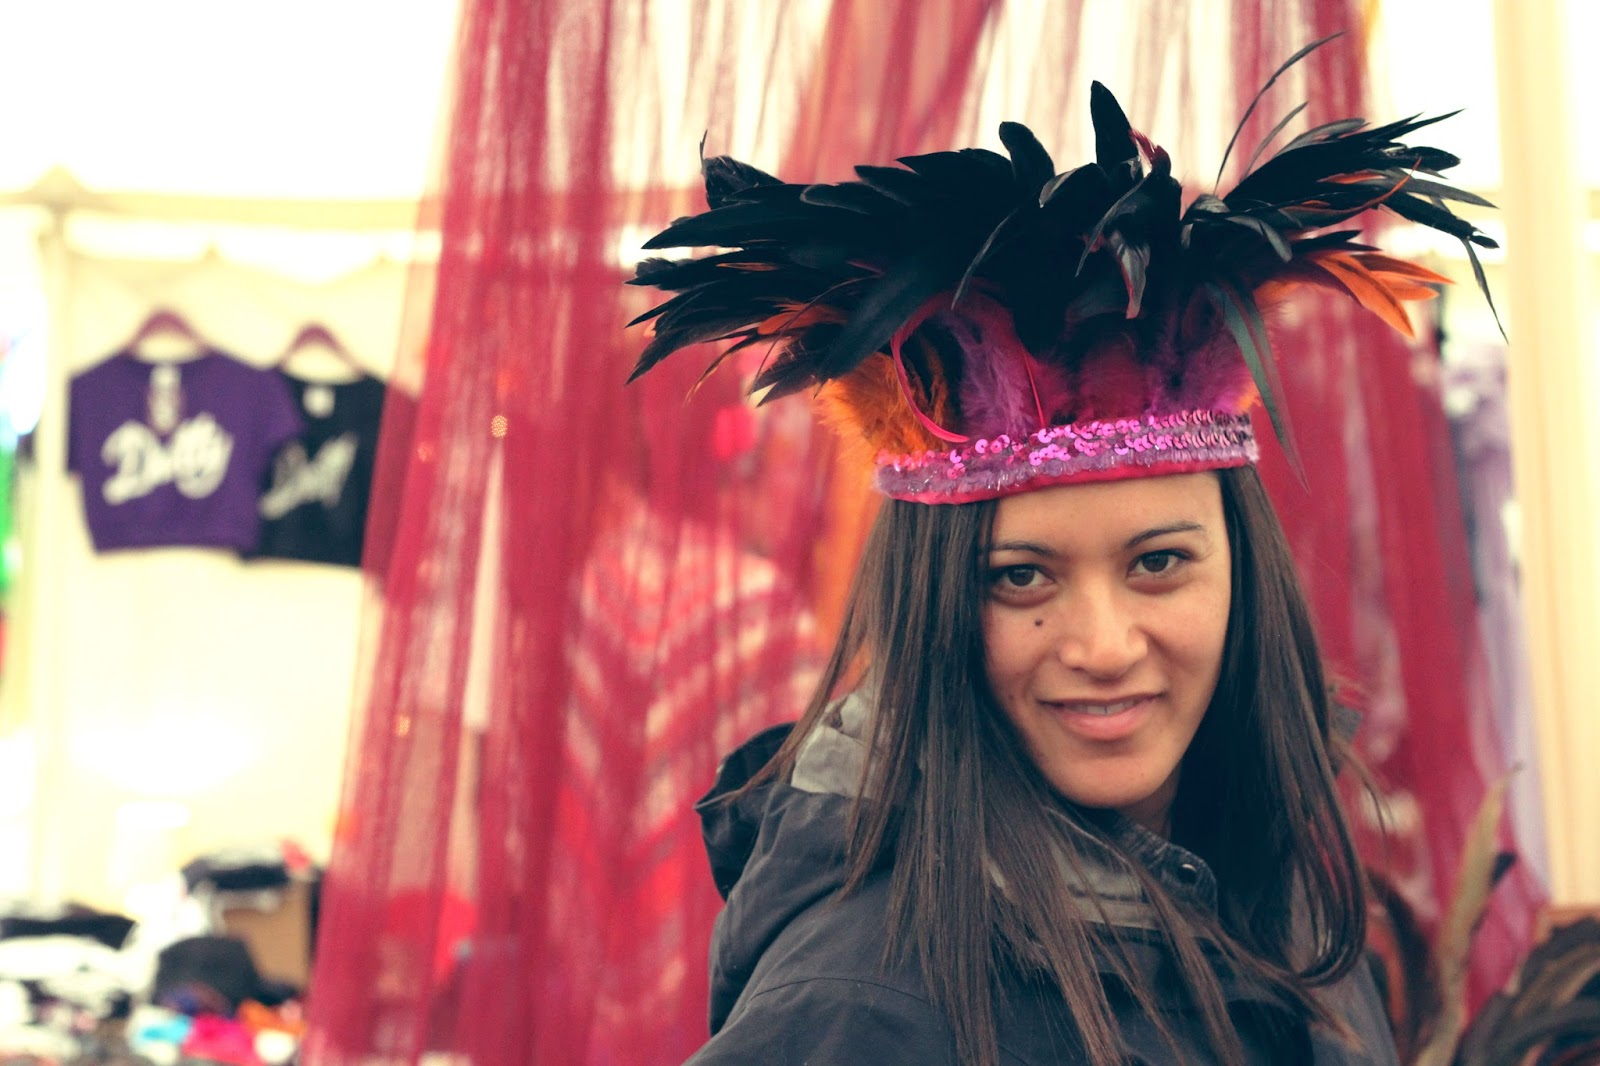 Dulcie Feather, feather headdress, festival style